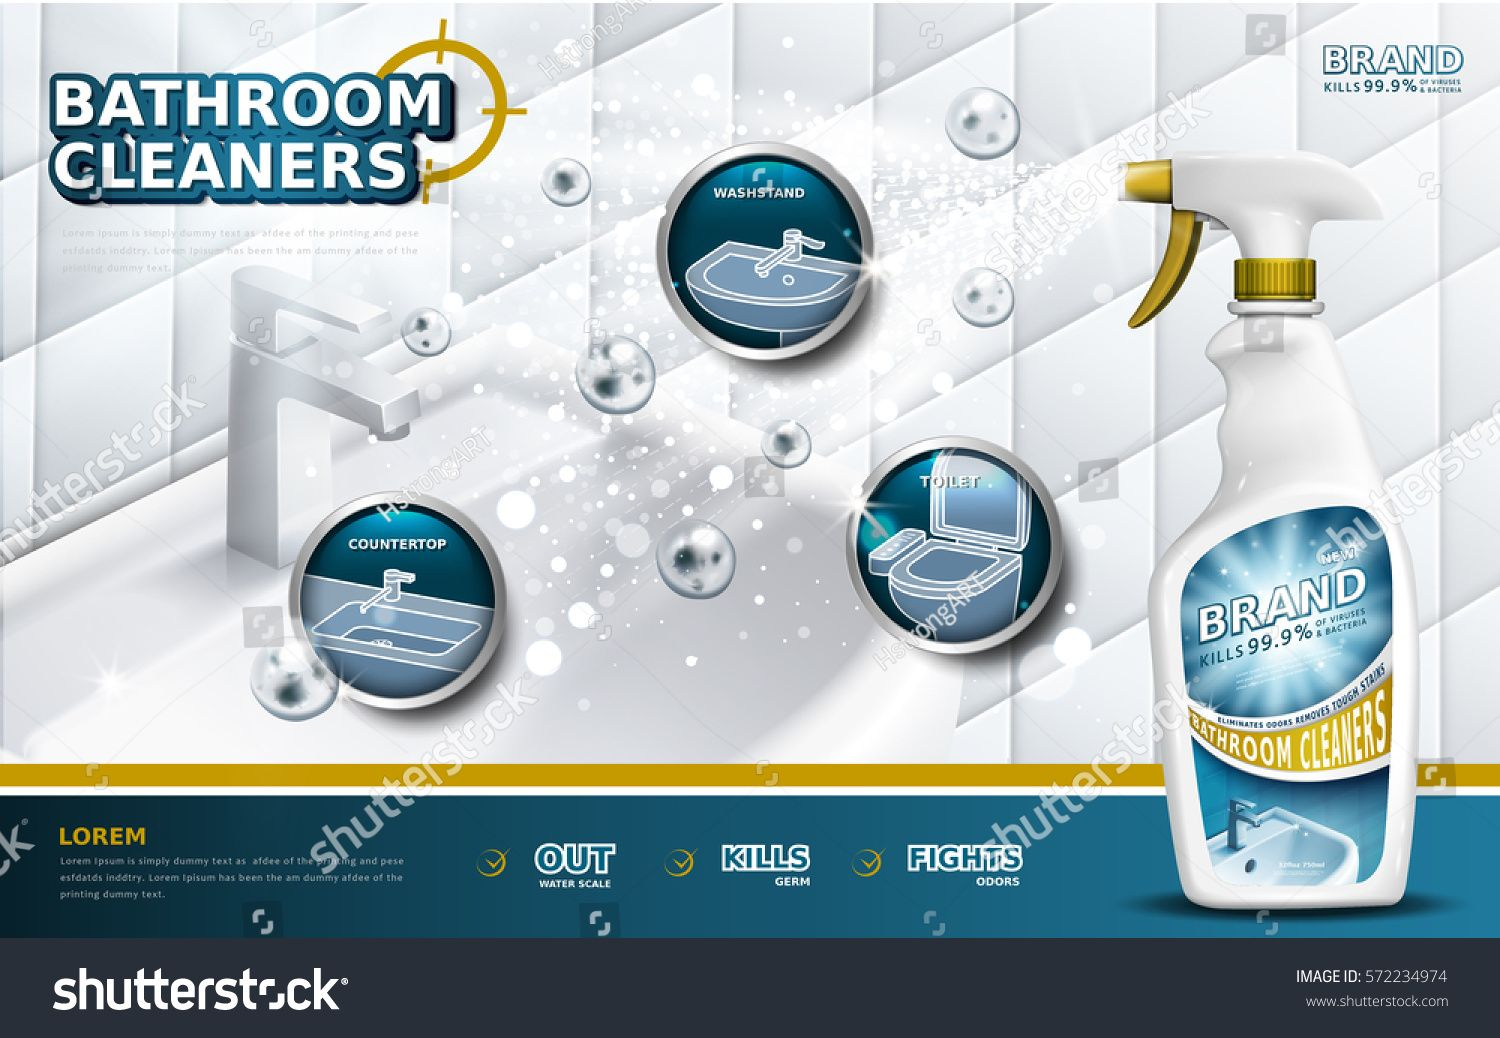 Bathroom Cleaners Ads Spray Bottle With Detergent Liquid Used For